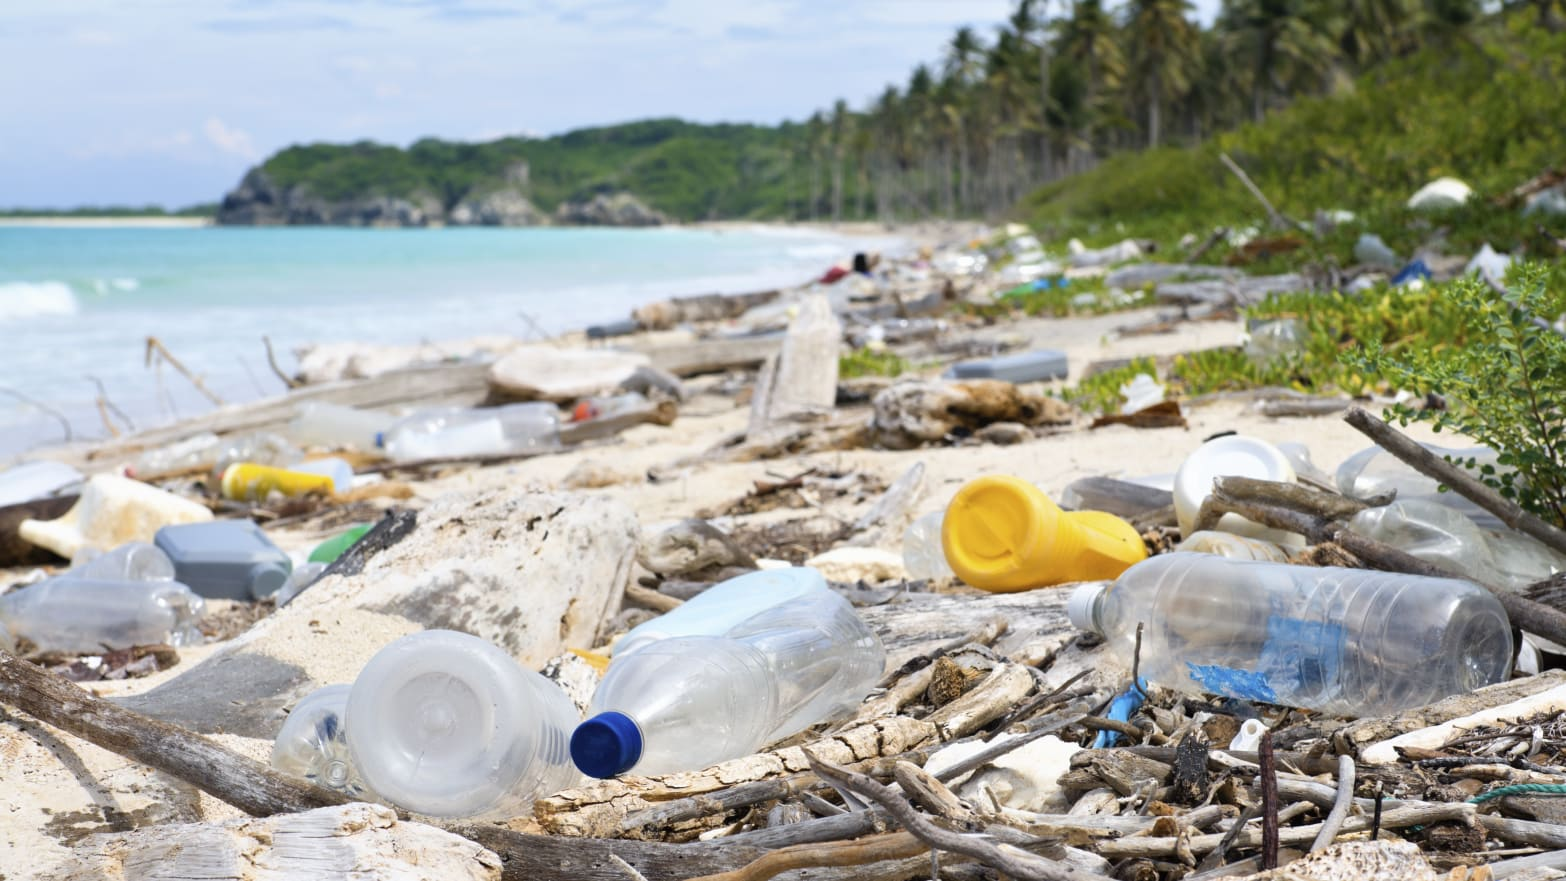 Why Recyclable Single-Use Water Bottles + Other Plastics Are A Plague on Our Planet